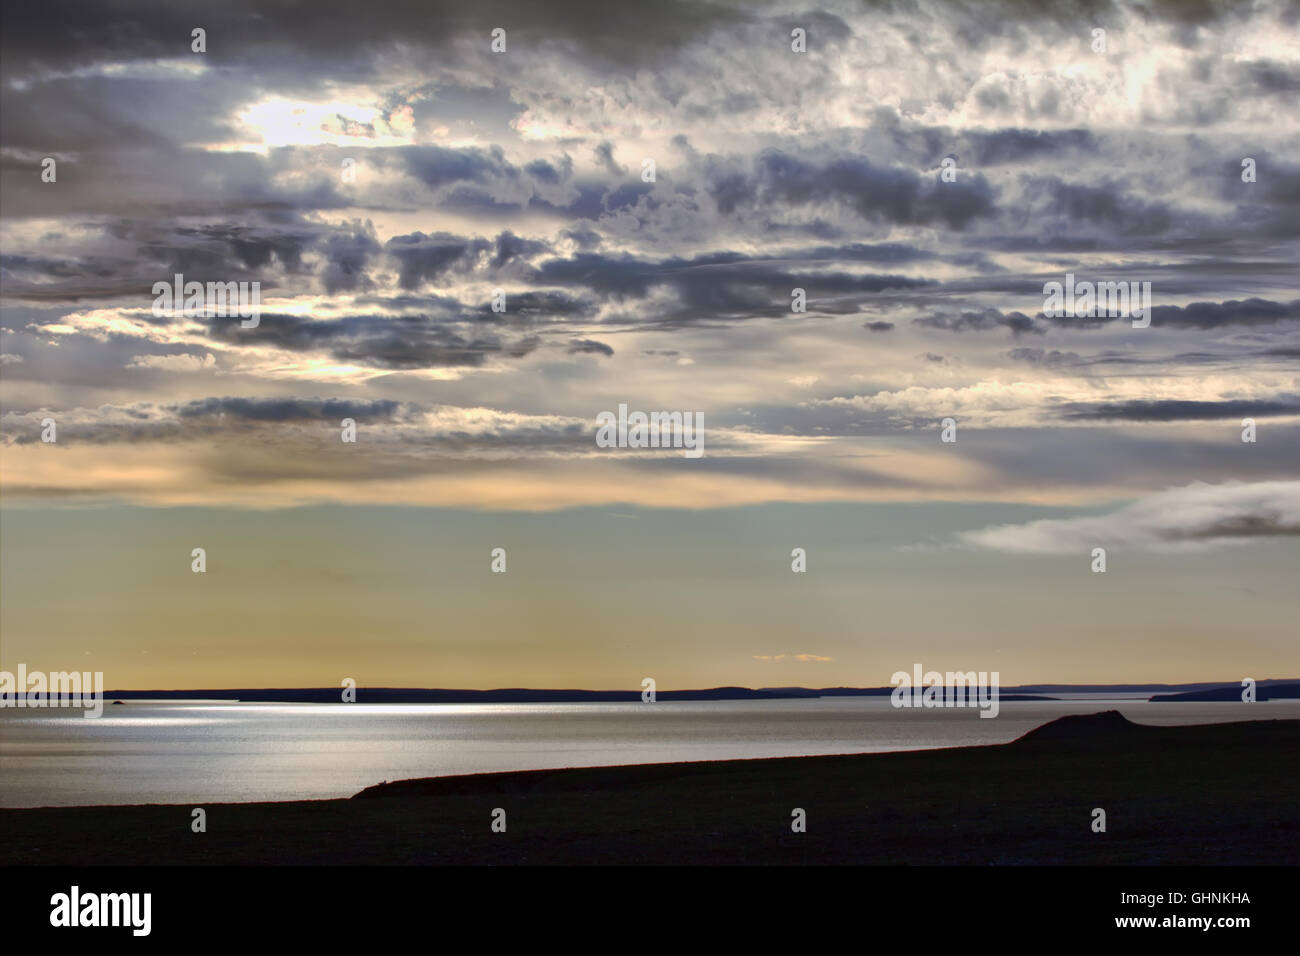 View from South to Bay Chernaya - atomic test site. It is site for surface and underwater nuclear bomb tests. Russian - Stock Image